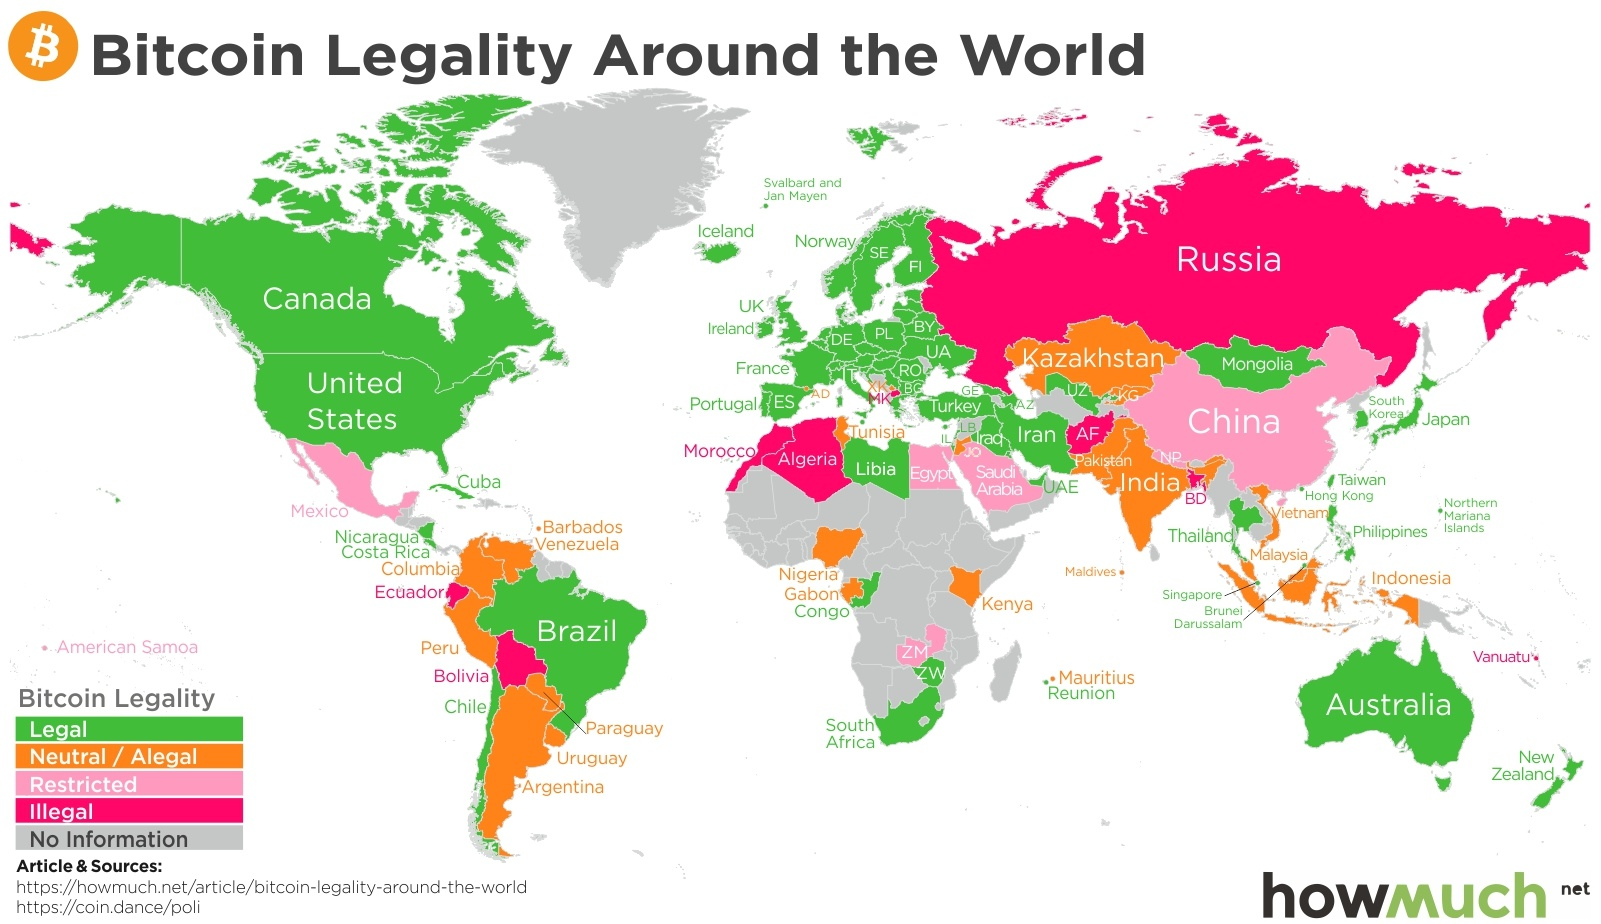 [صورة مرفقة: bitcoin-legality-around-the-world-6bc4.jpg]